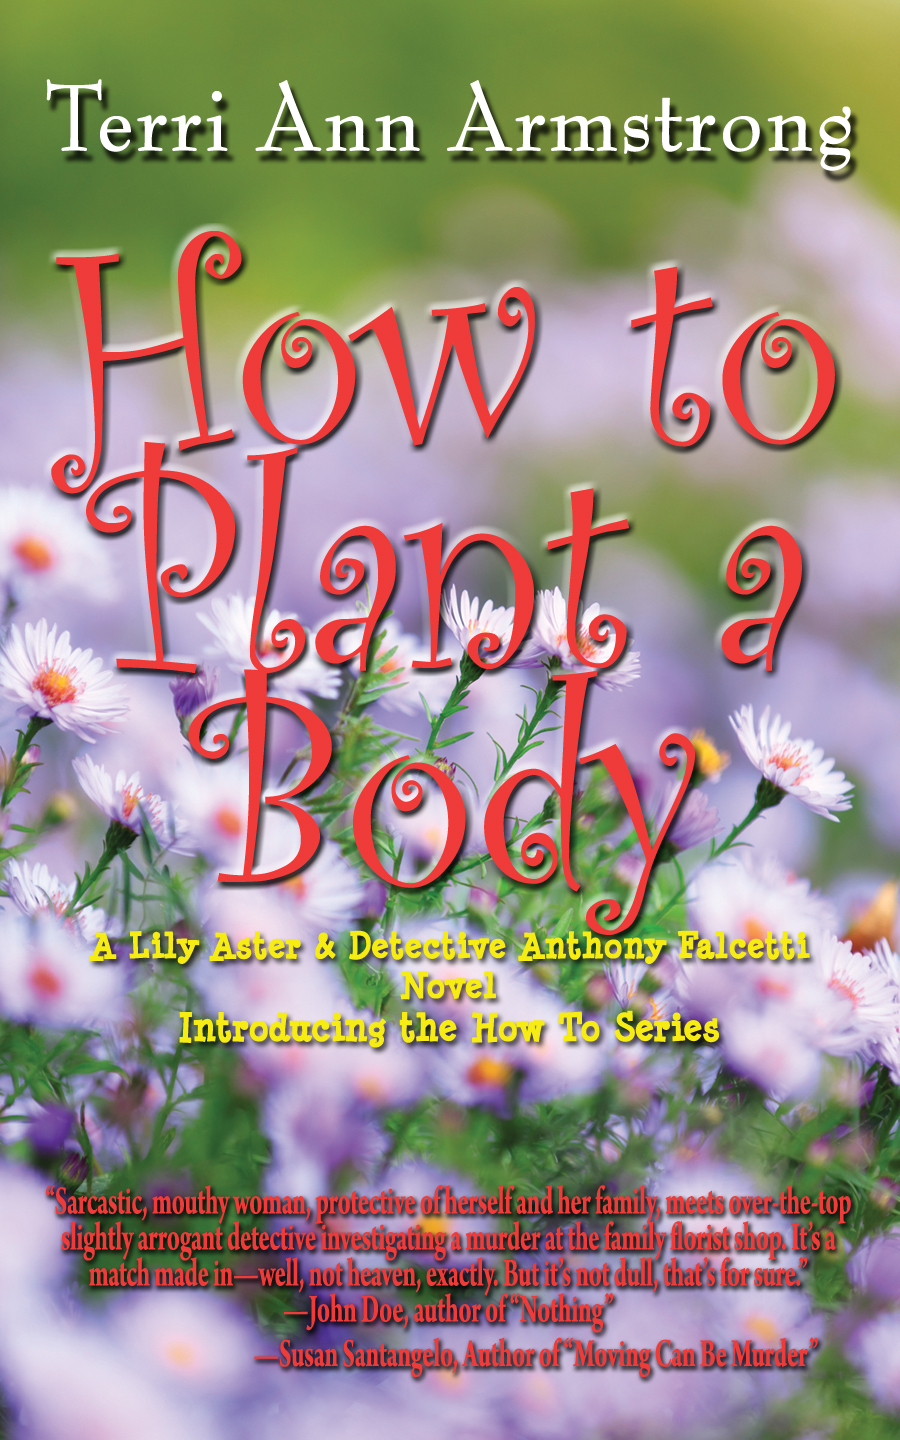 How to Plant a Body By: Terri Ann Armstrong